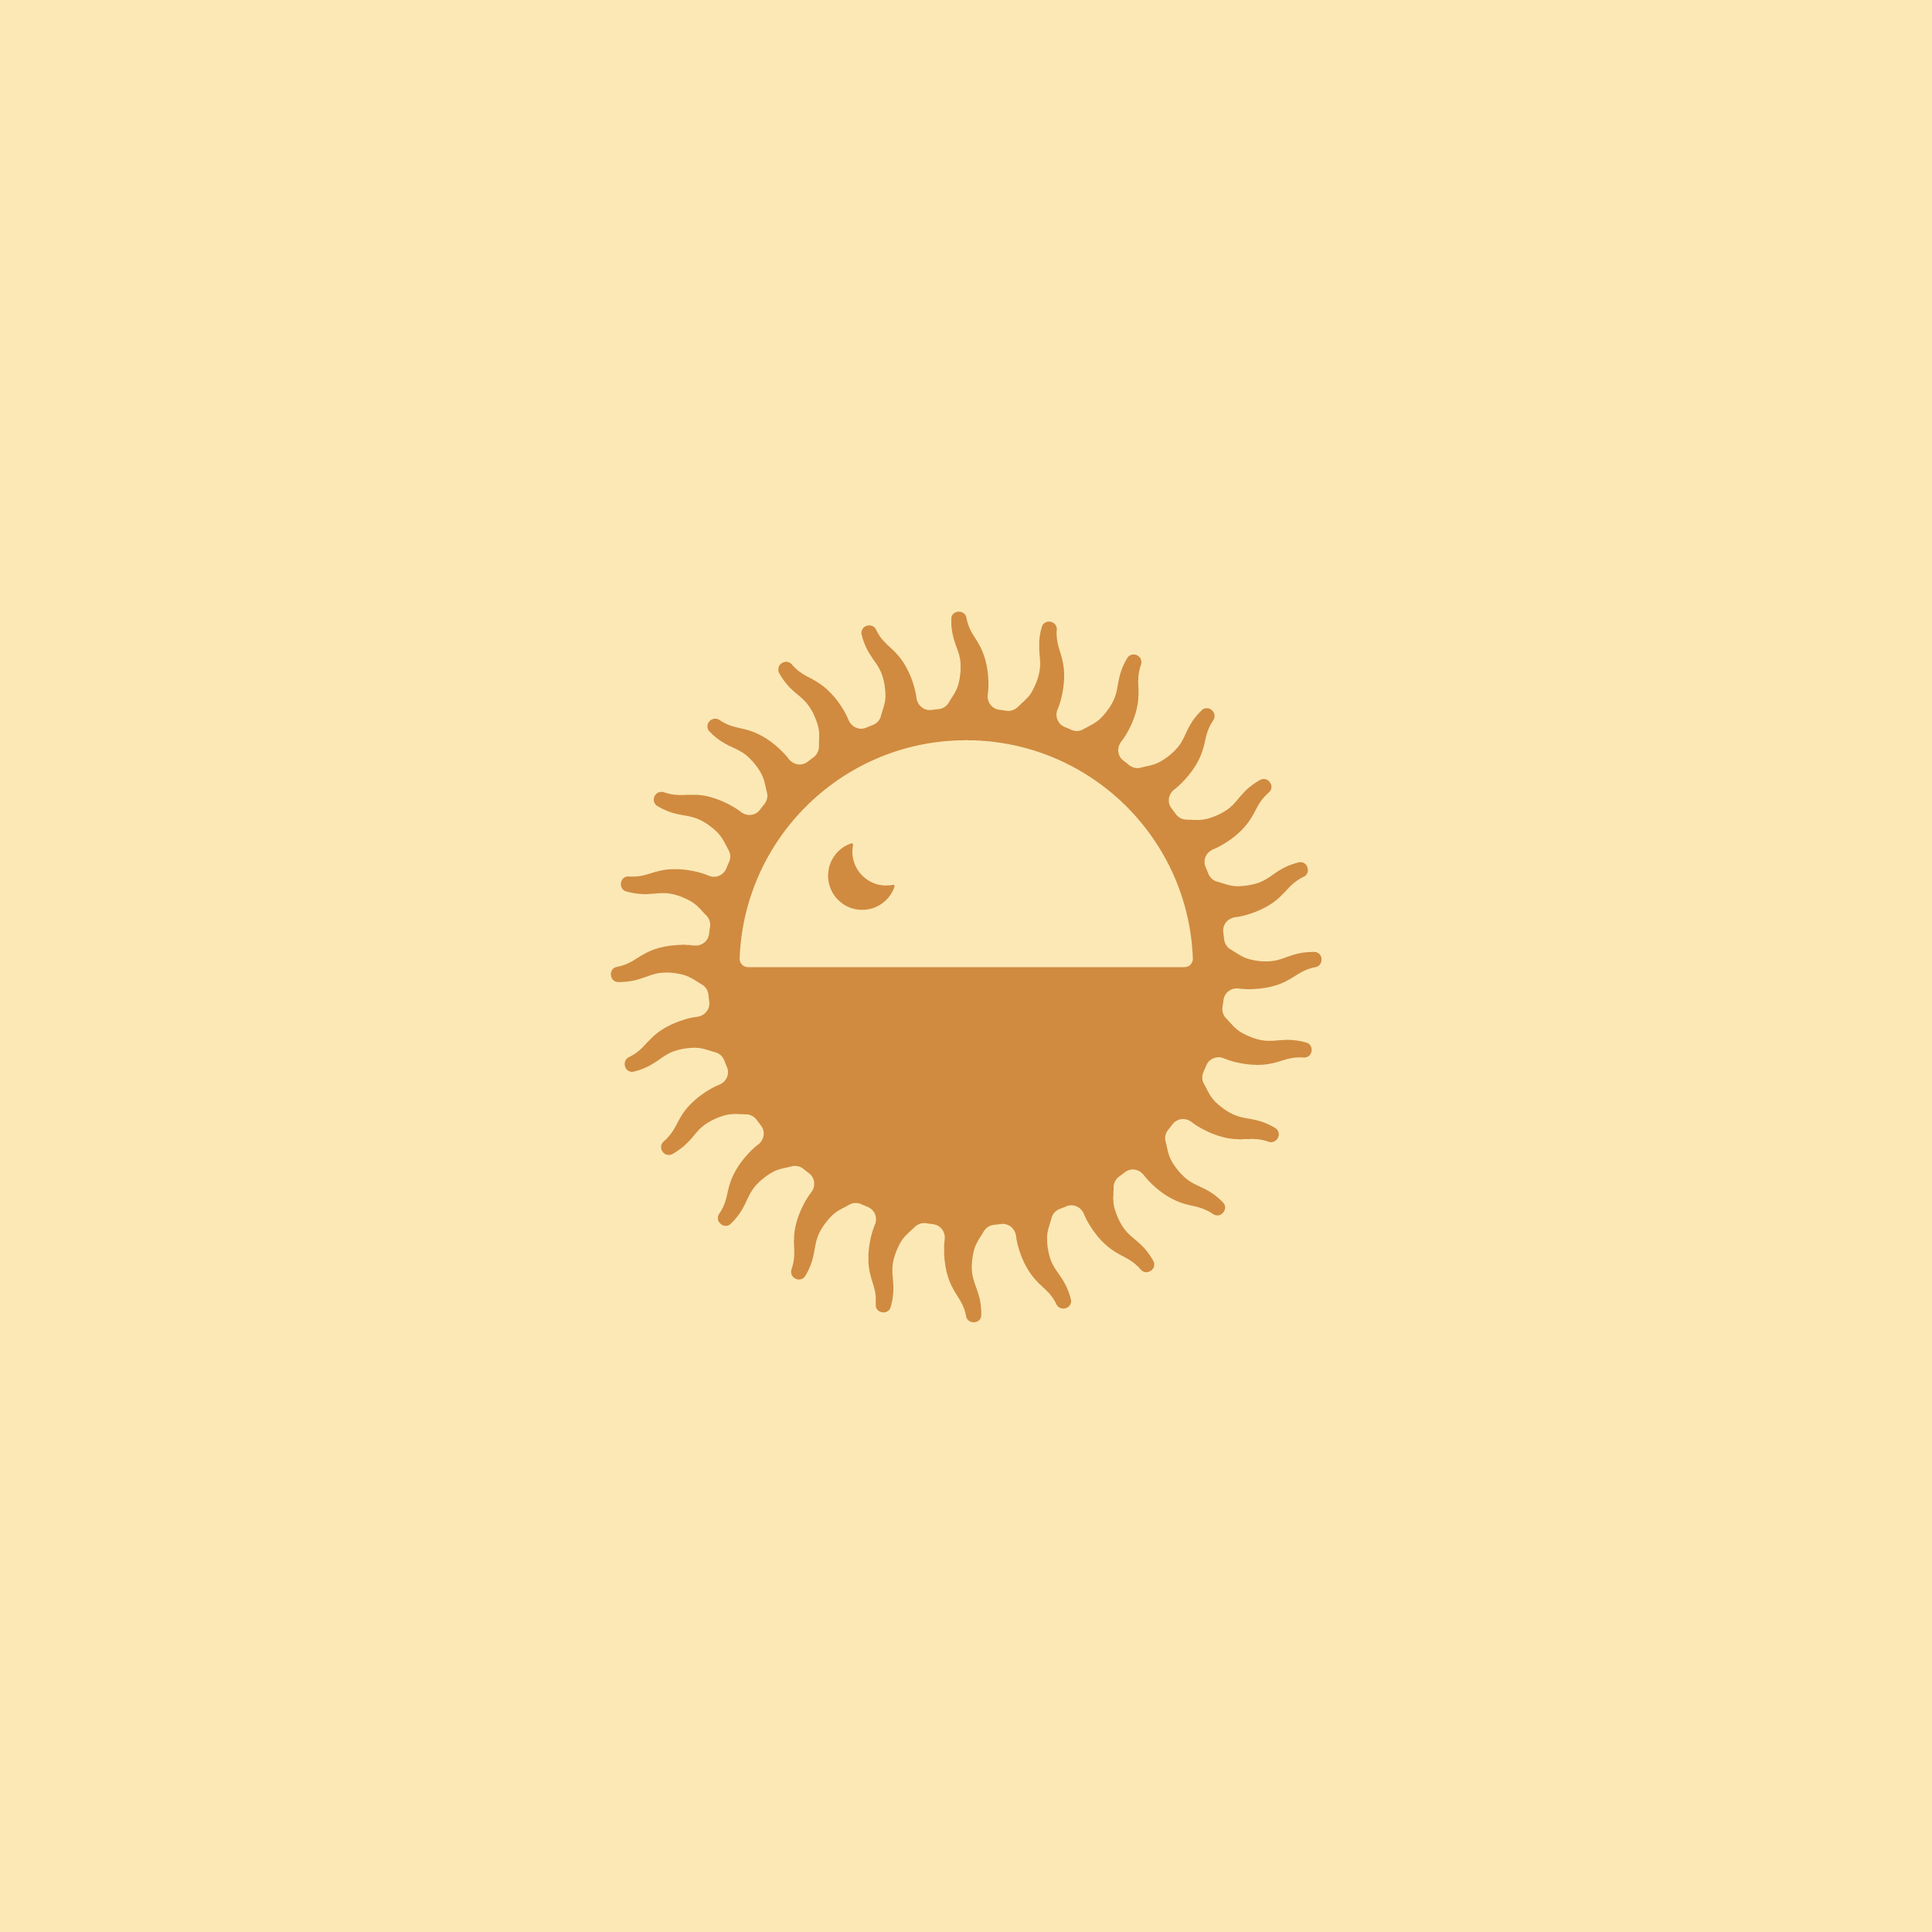 LOW AND GLOW_SUN-01.png